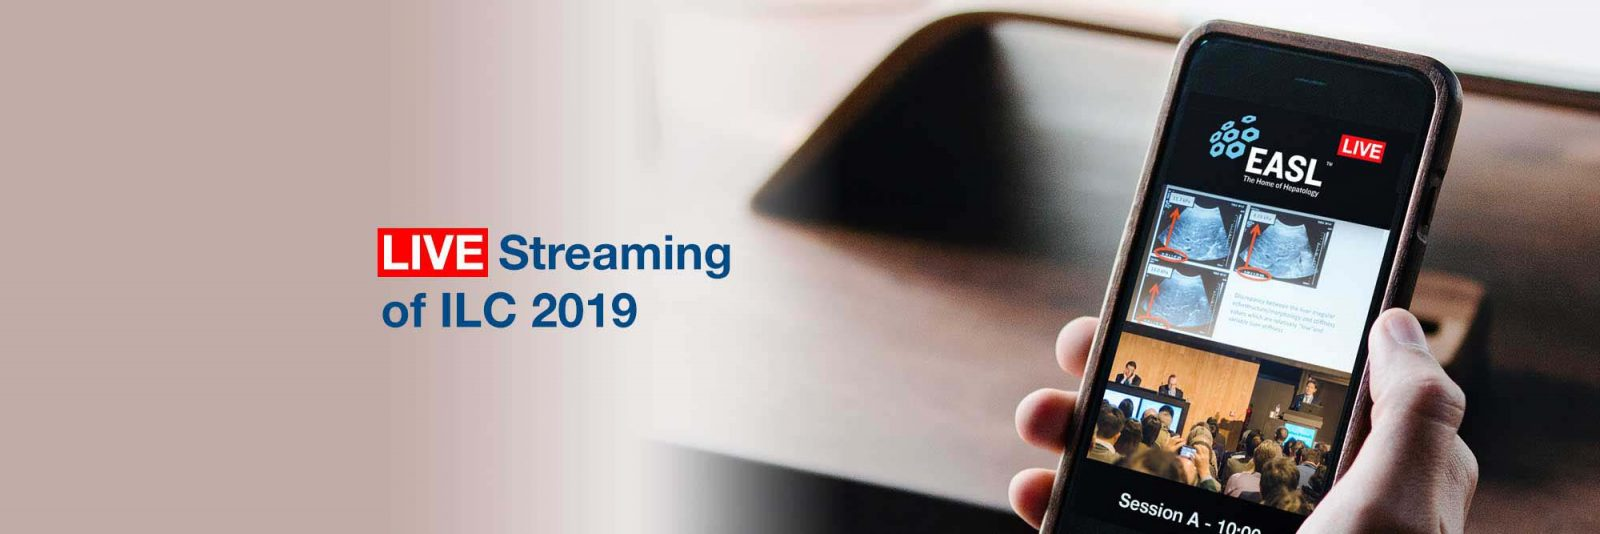 ILC 2019 live streaming library